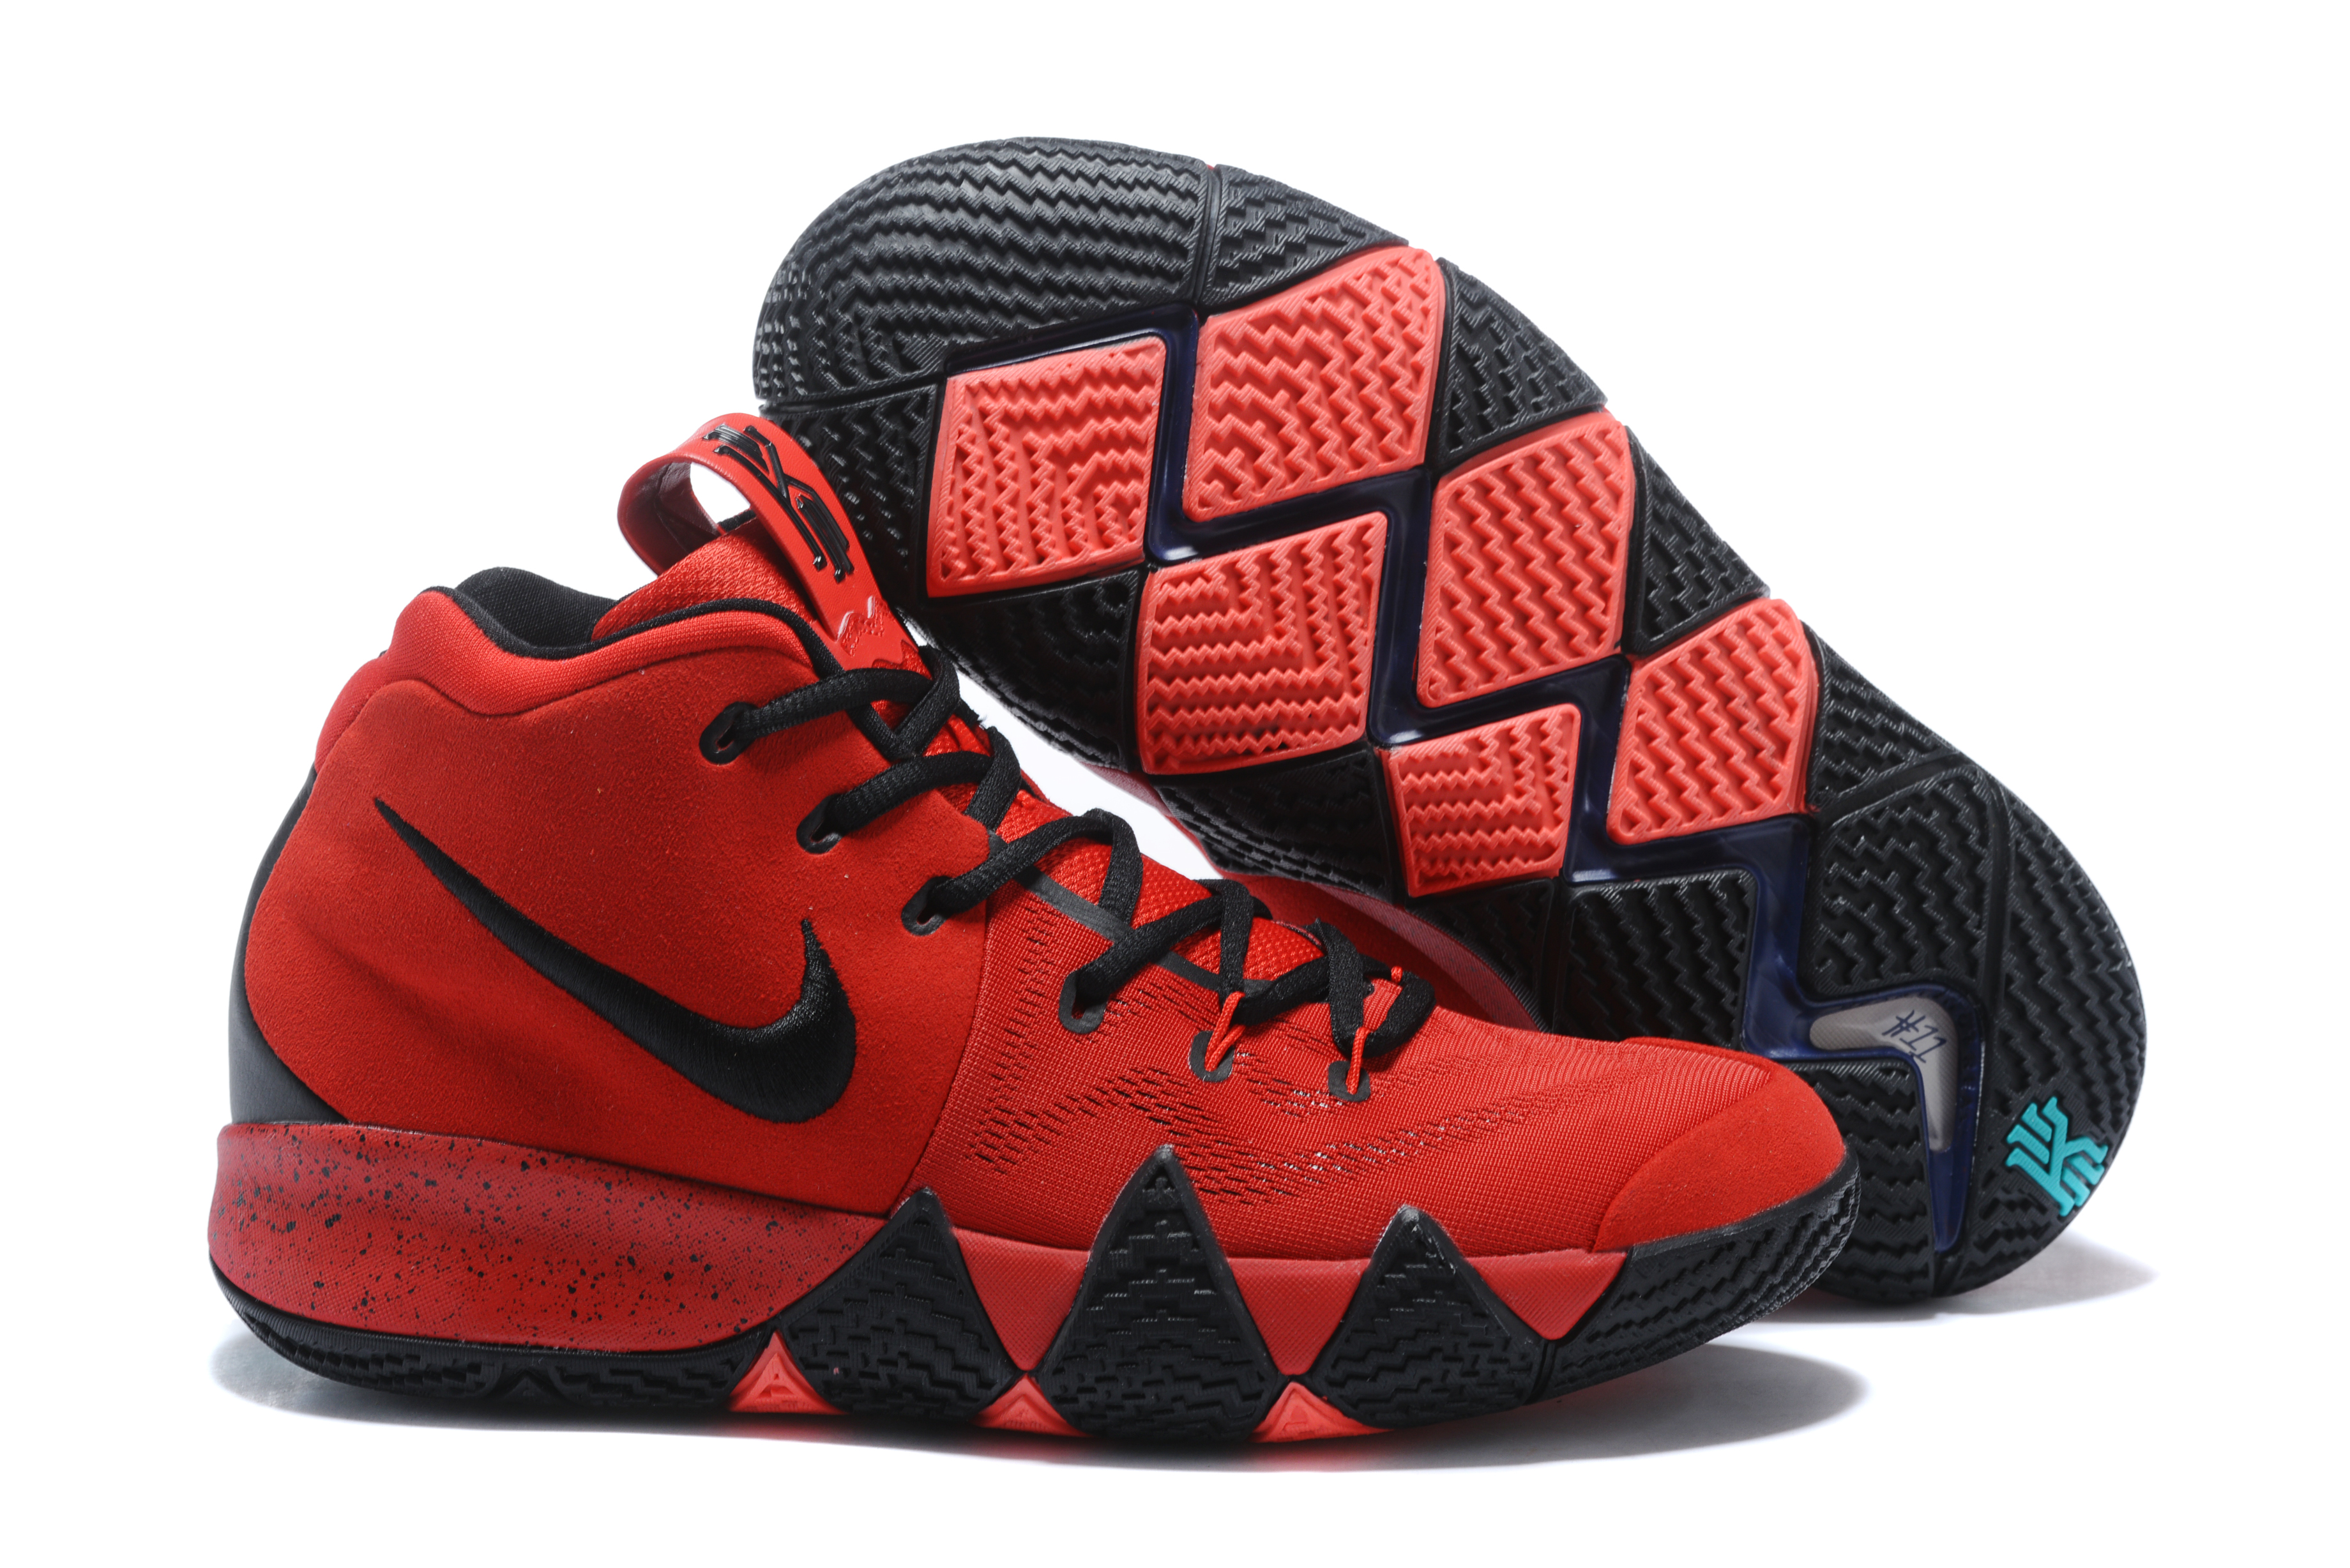 Newly Nike Kyrie 4 Black Red Shoes